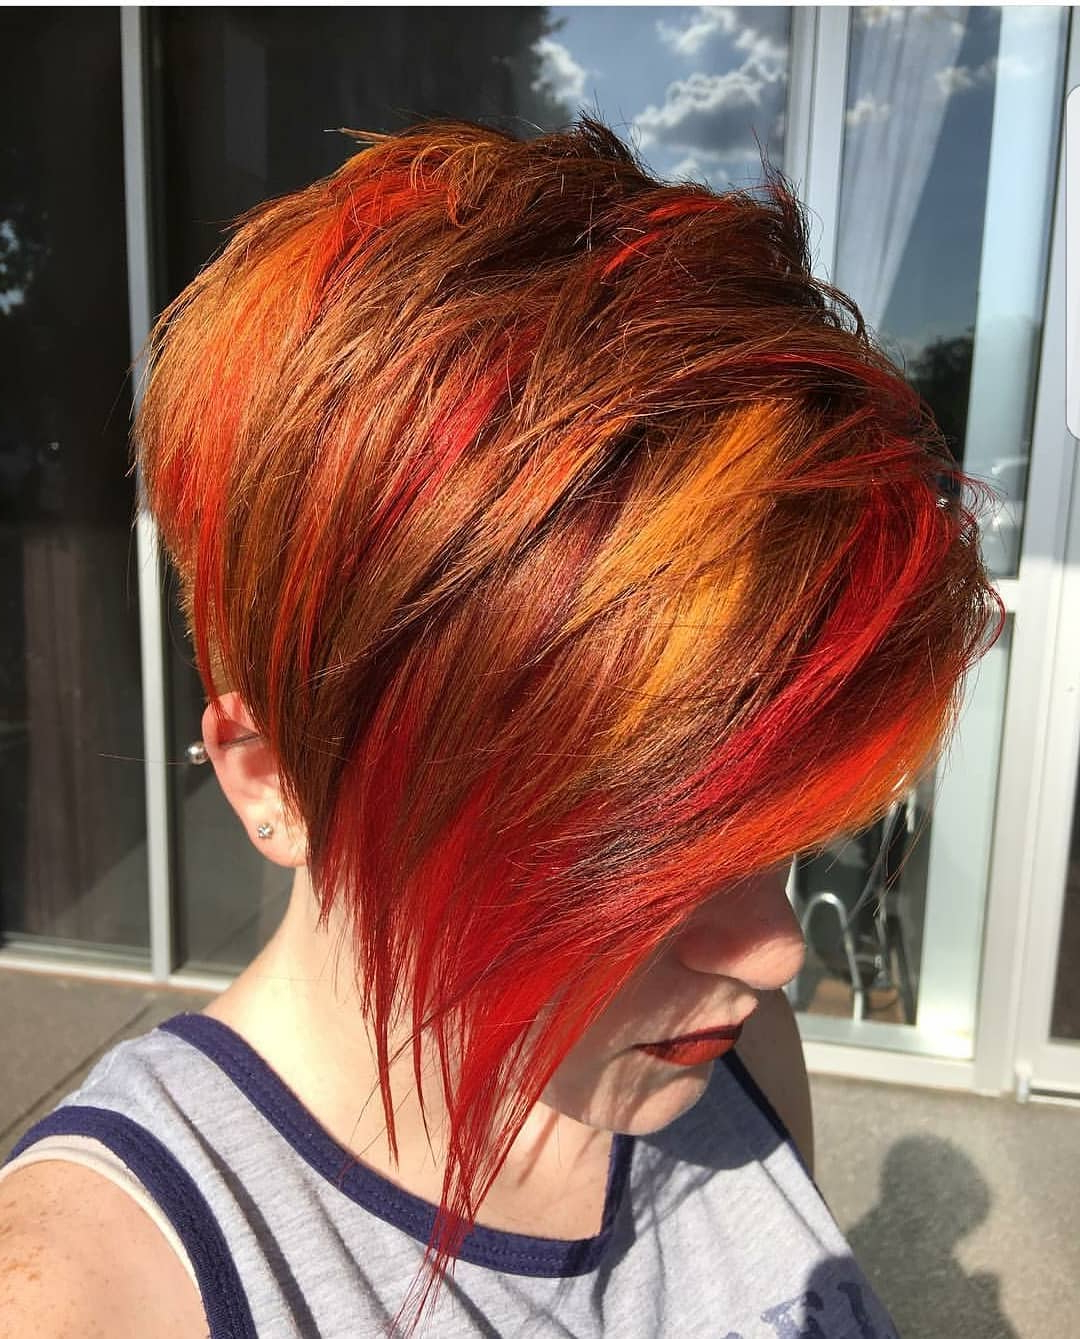 10 Beautiful Asymmetrical Short Pixie Haircuts & Hairstyles, Women Within Tapered Brown Pixie Hairstyles With Ginger Curls (View 1 of 20)